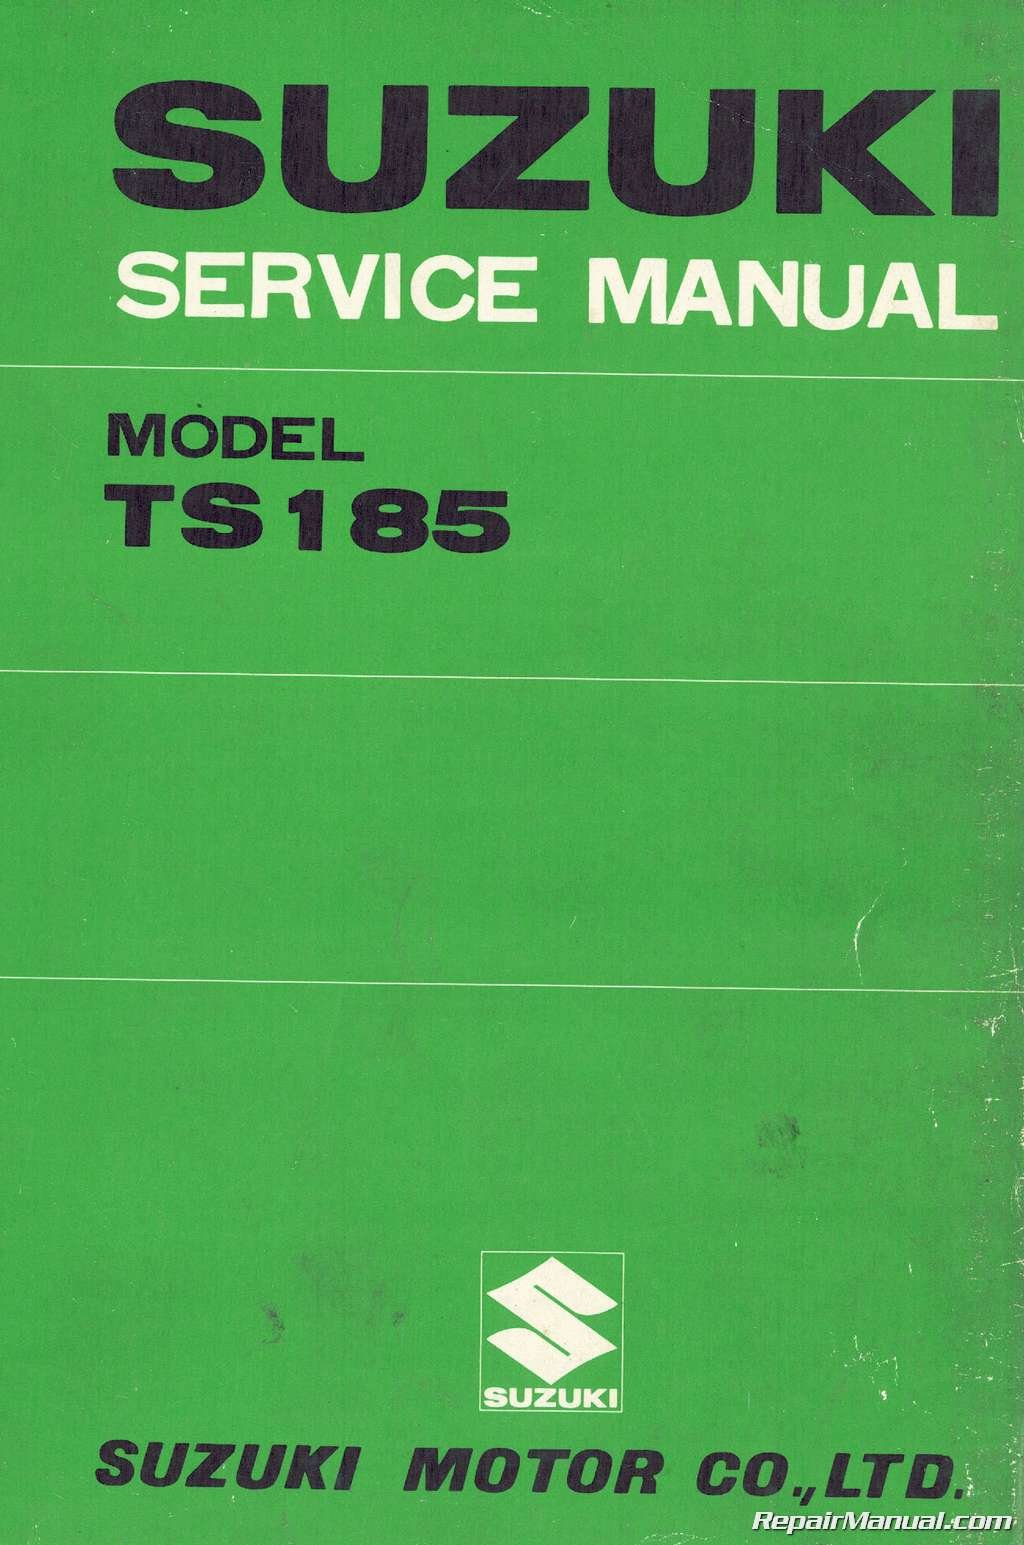 1976 Suzuki TS185 Sierra Motorcycle Service Manual: Manufacturer:  Amazon.com: Books